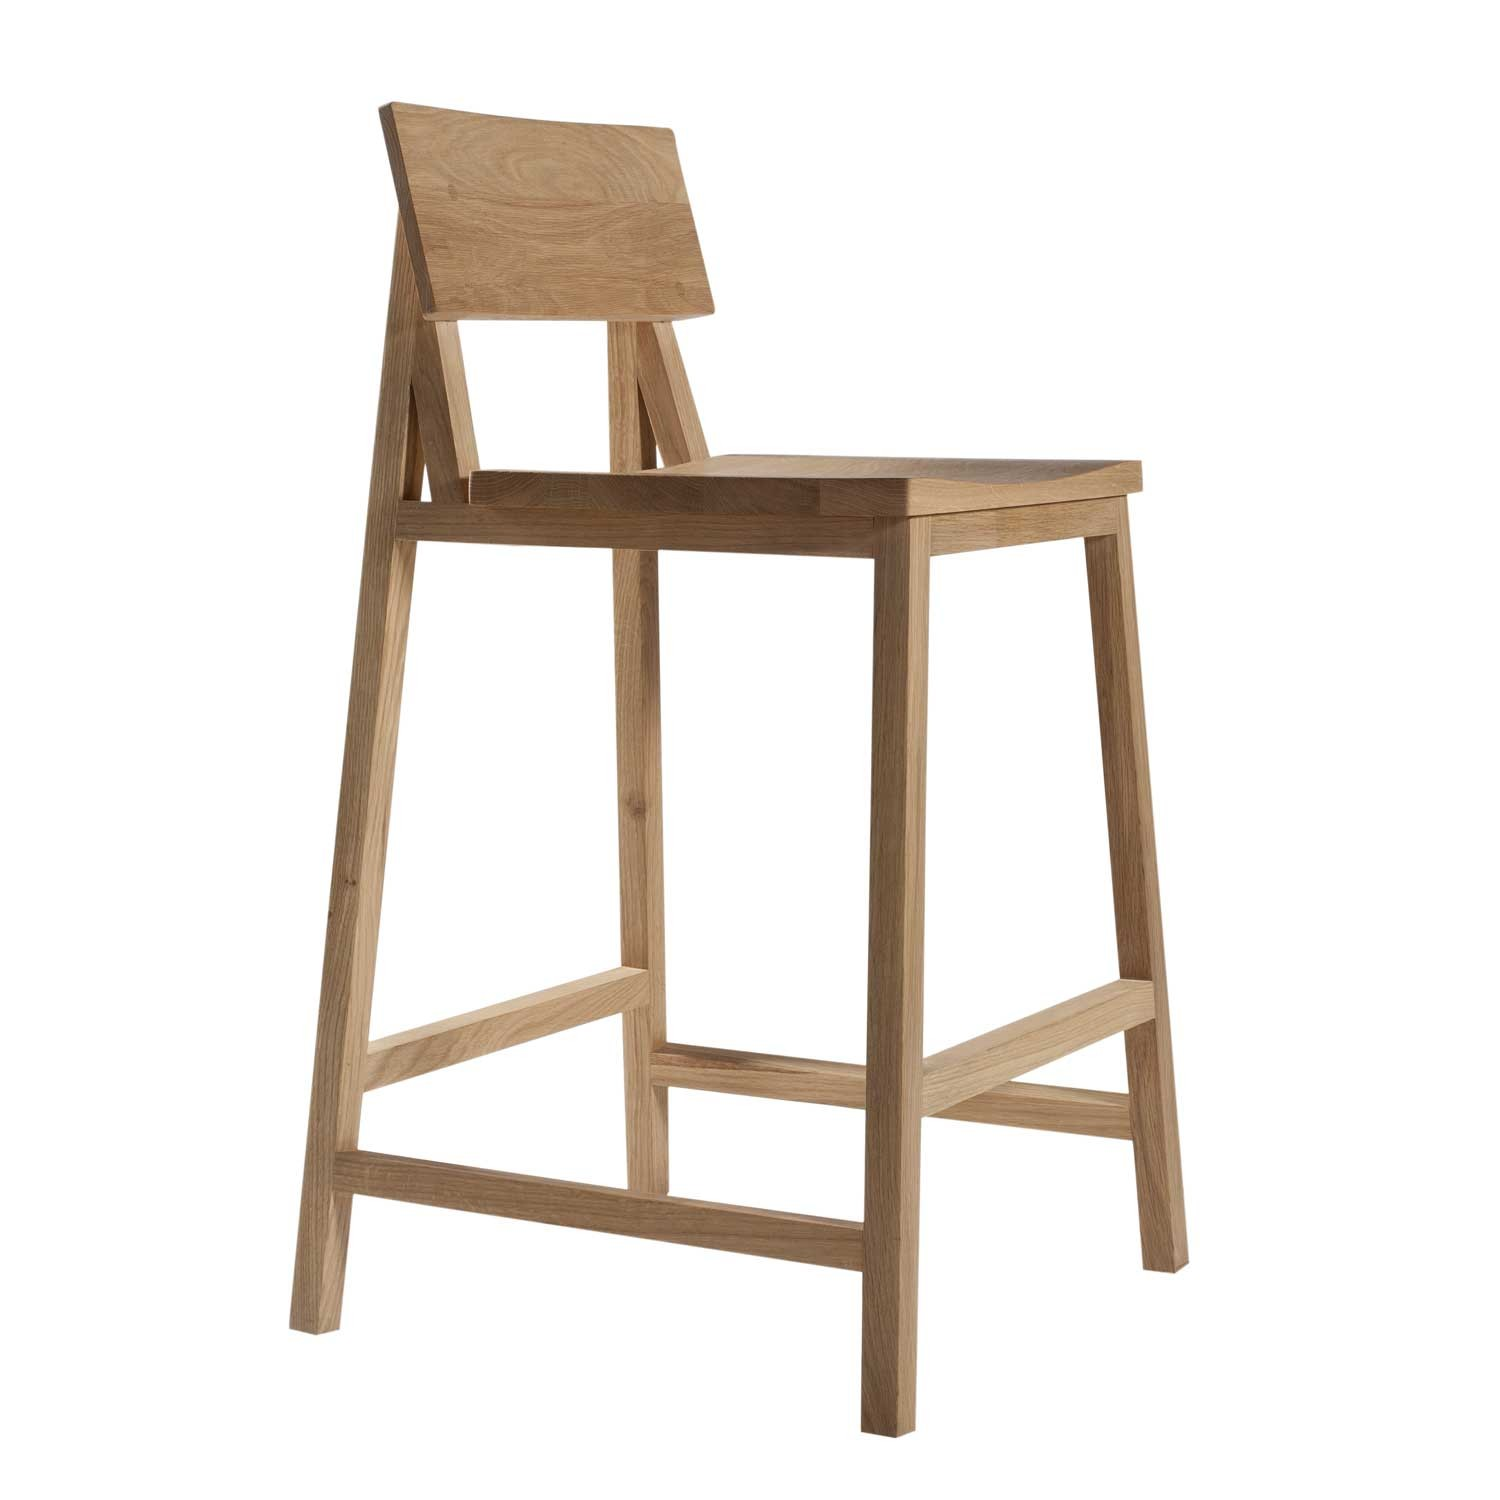 tall counter chairs. Ethnicraft Oak N3 Kitchen Counter Stool Tall Chairs